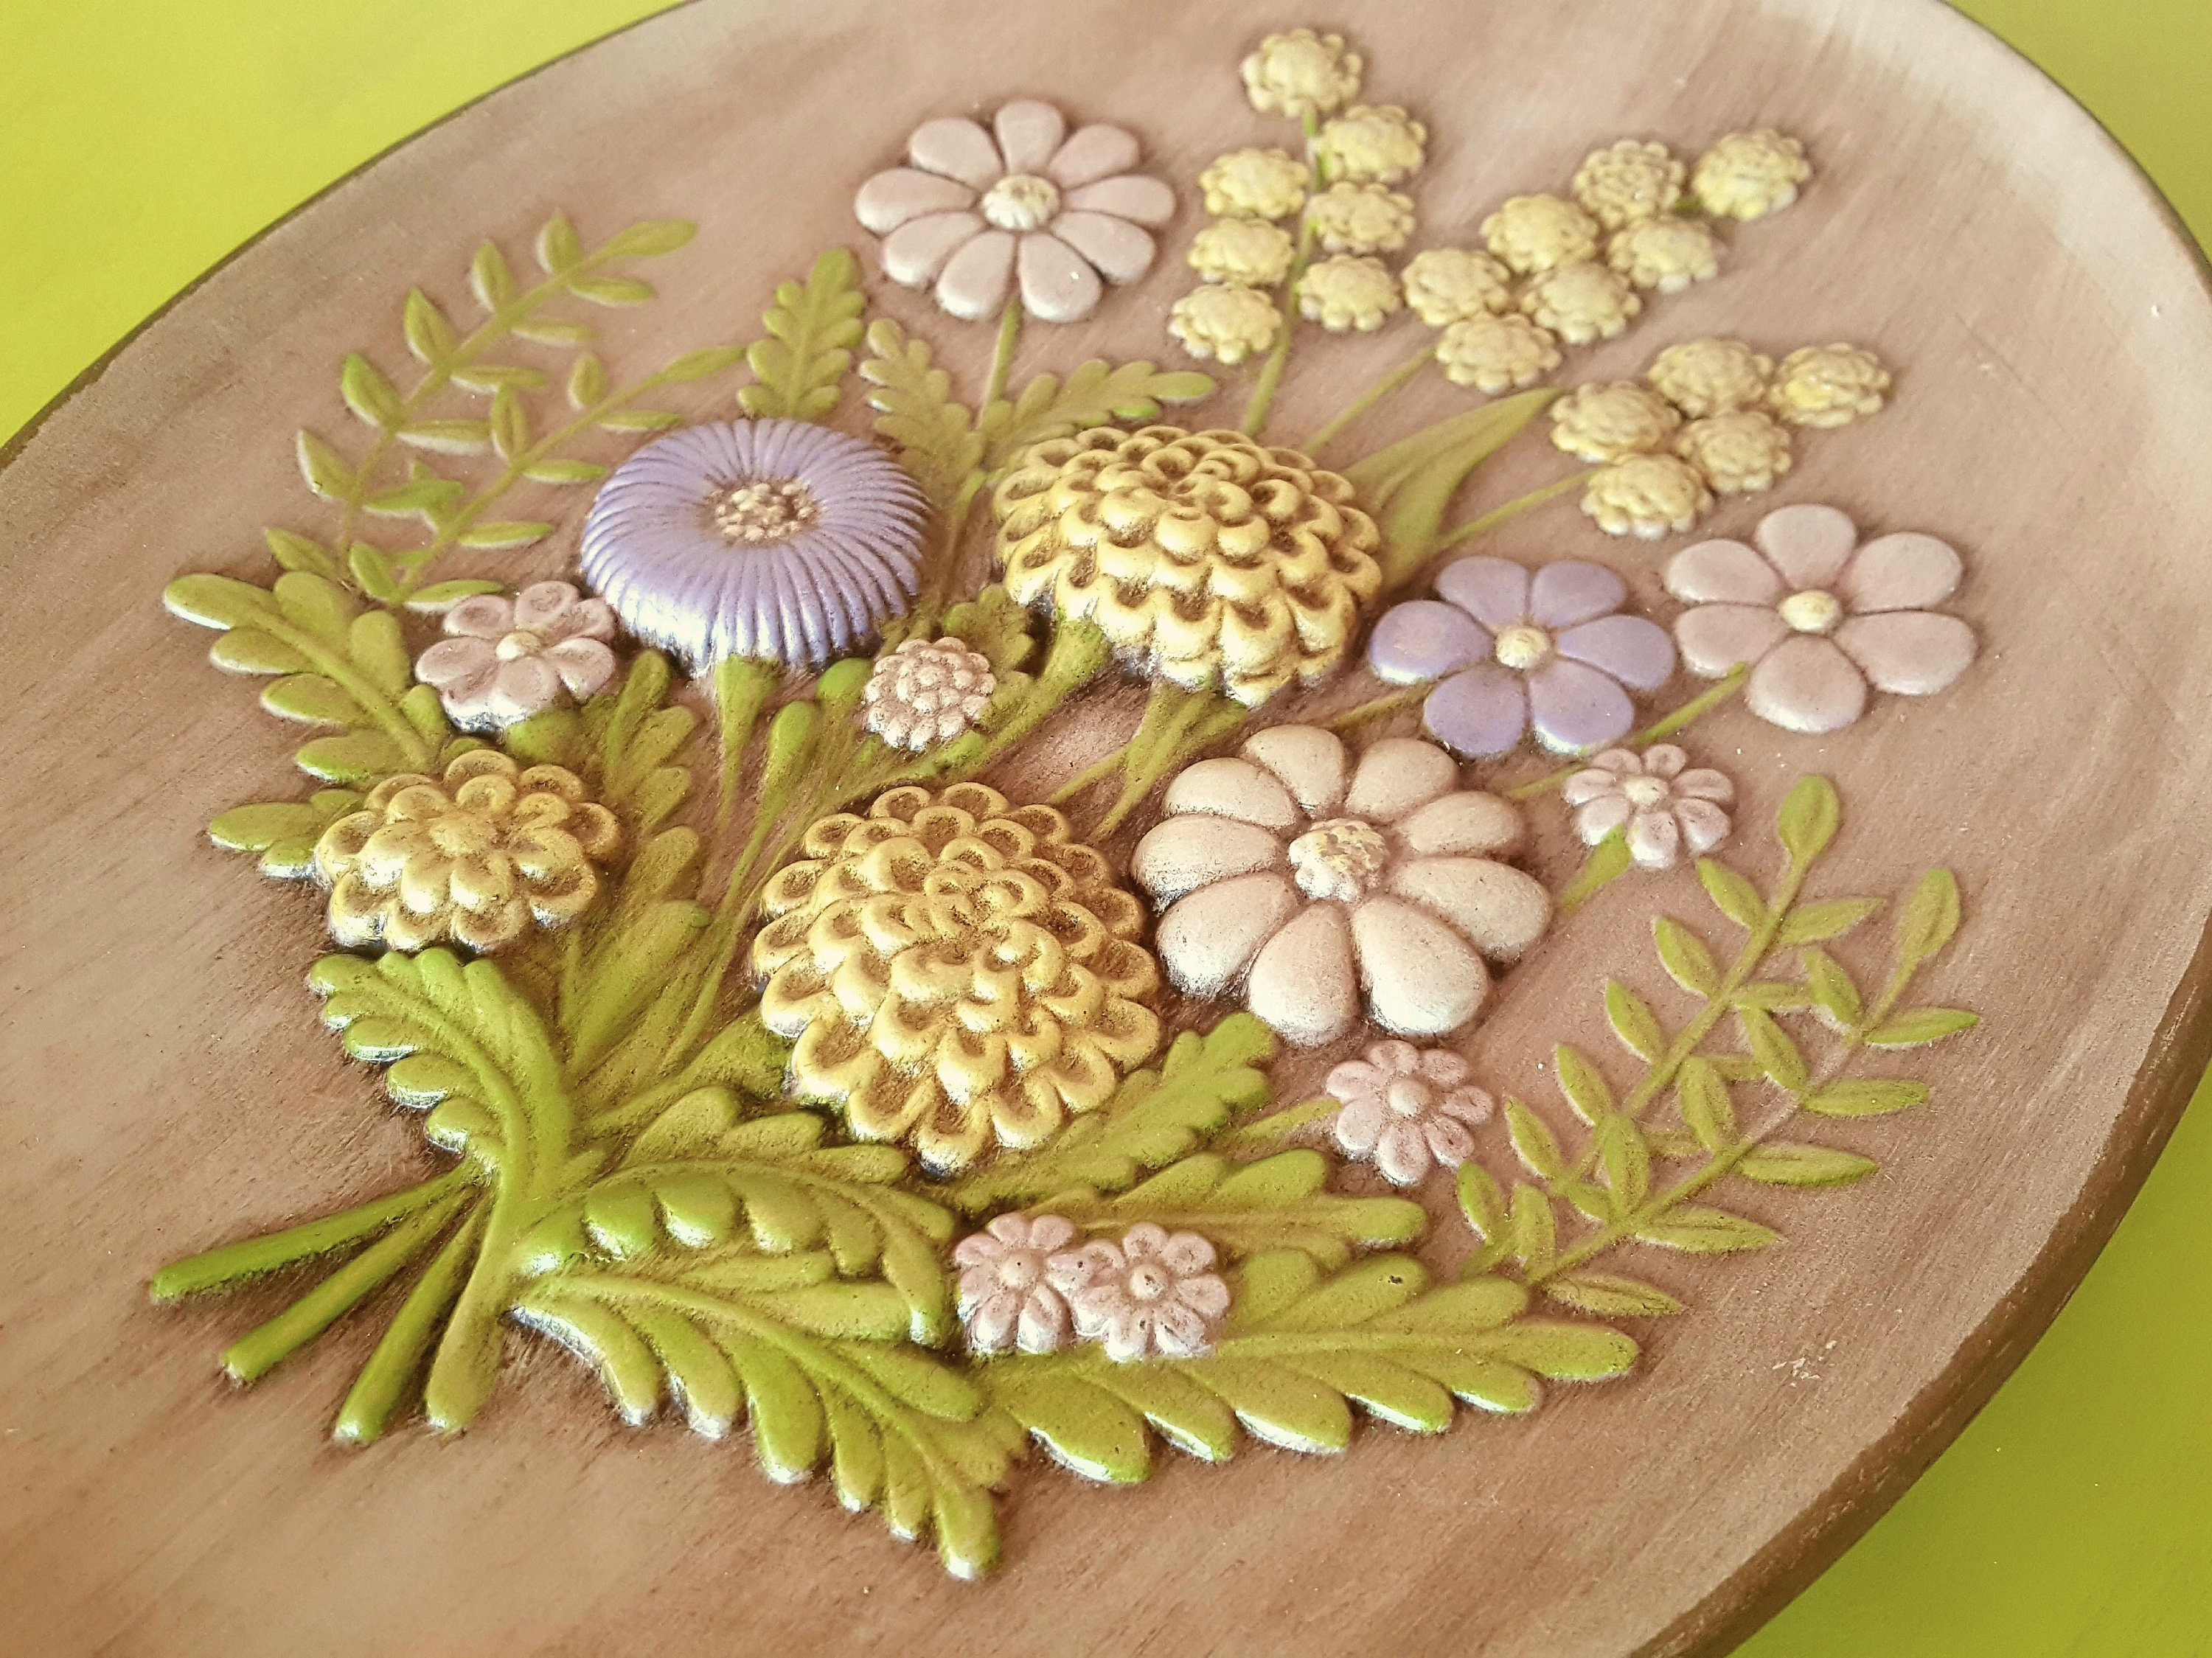 Handcrafted Ceramic Oval Floral Plate Floral Wall Hanging   Etsy